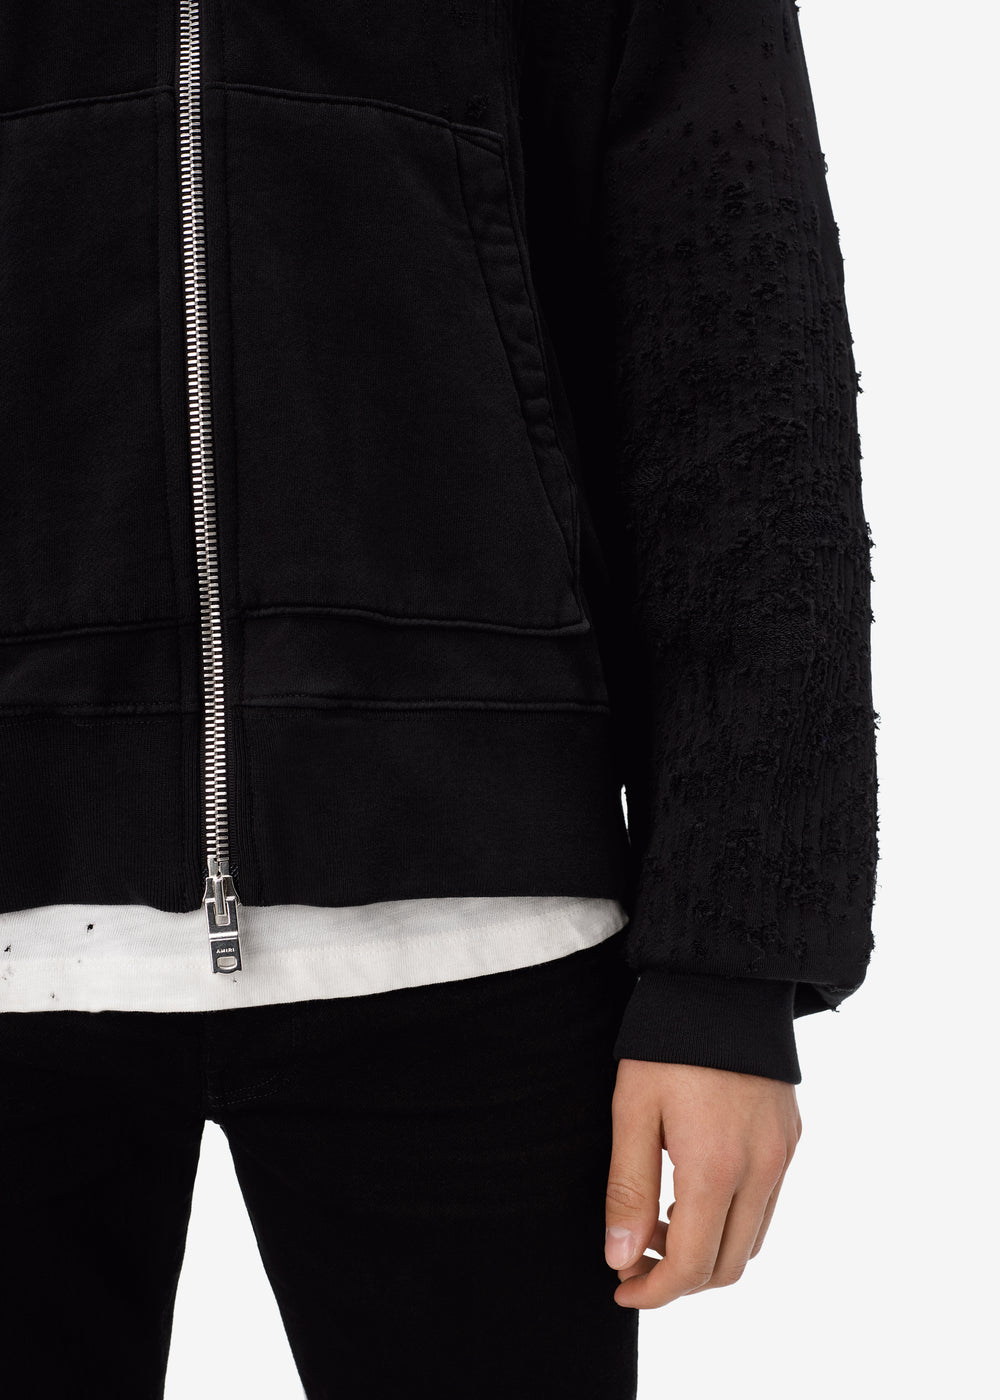 SHOTGUN FITTED ZIP UP HOODIE - BLACK